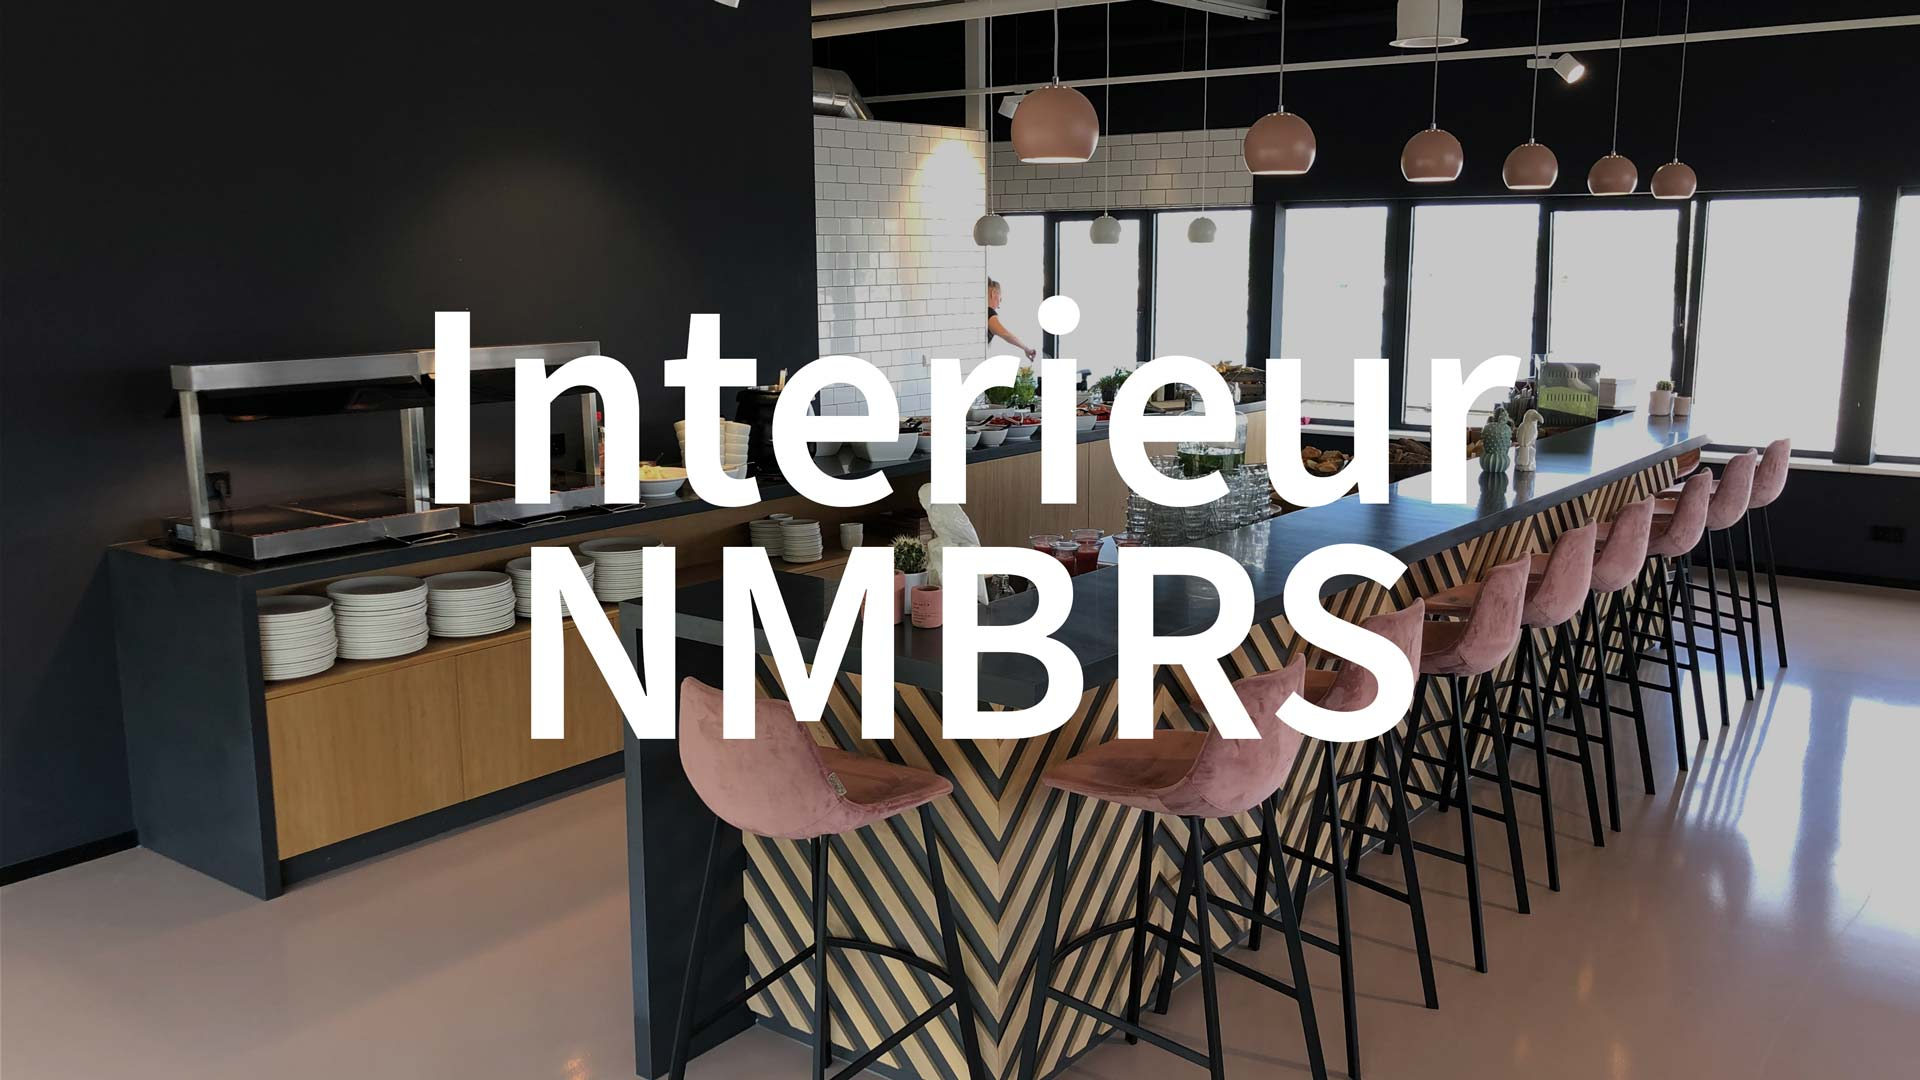 Interieur NMBRS